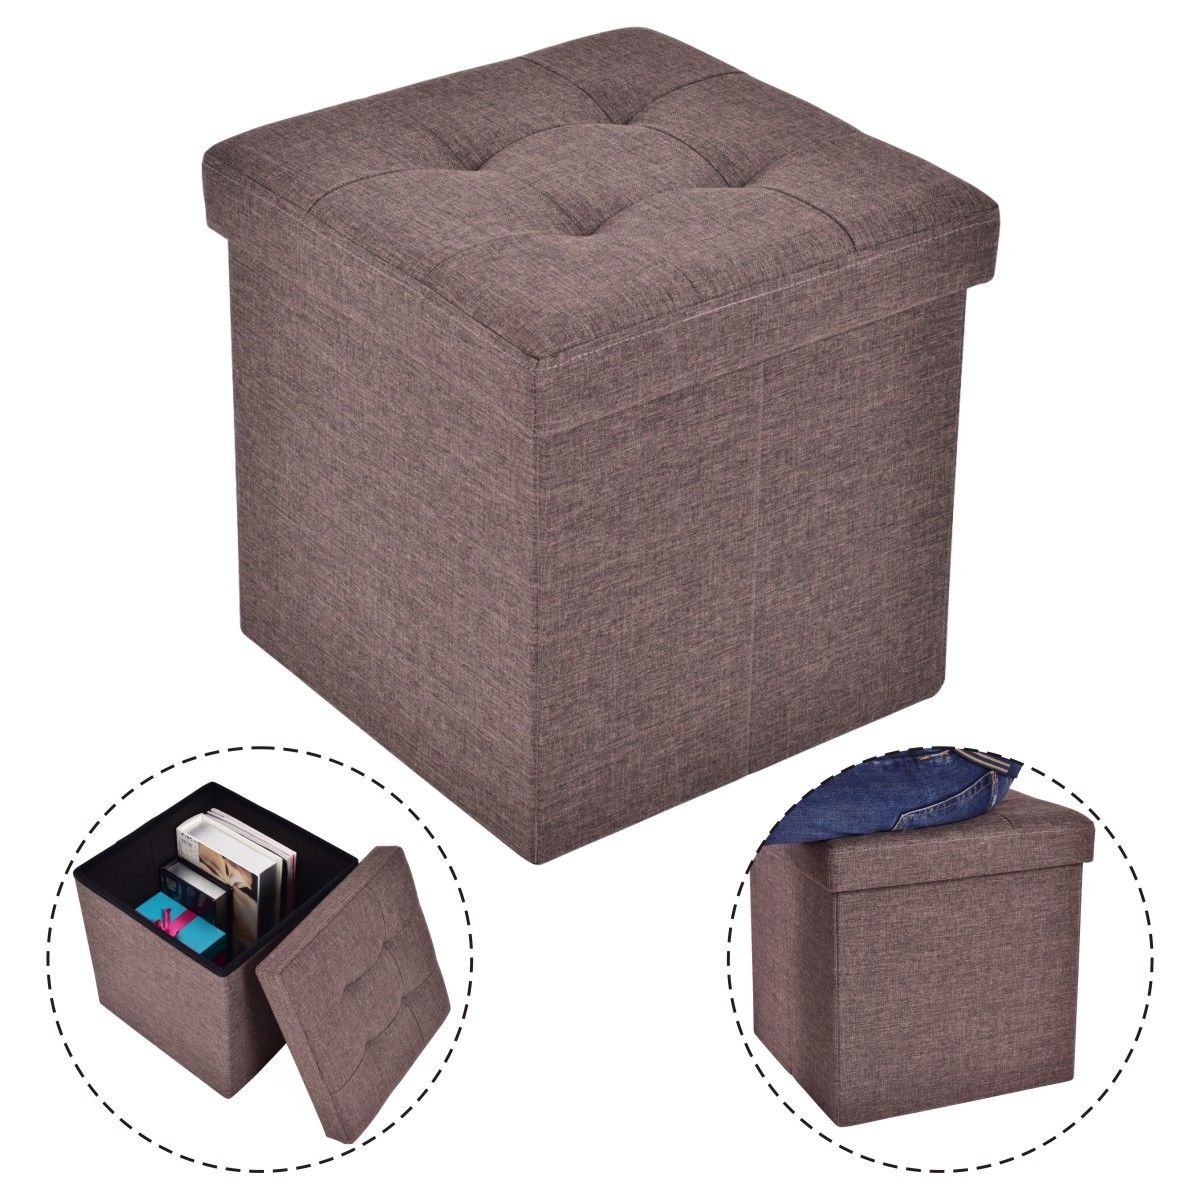 Charmant Goplus Folding Storage Cube Ottoman Seat Stool Box Footrest Furniture Decor  Brown